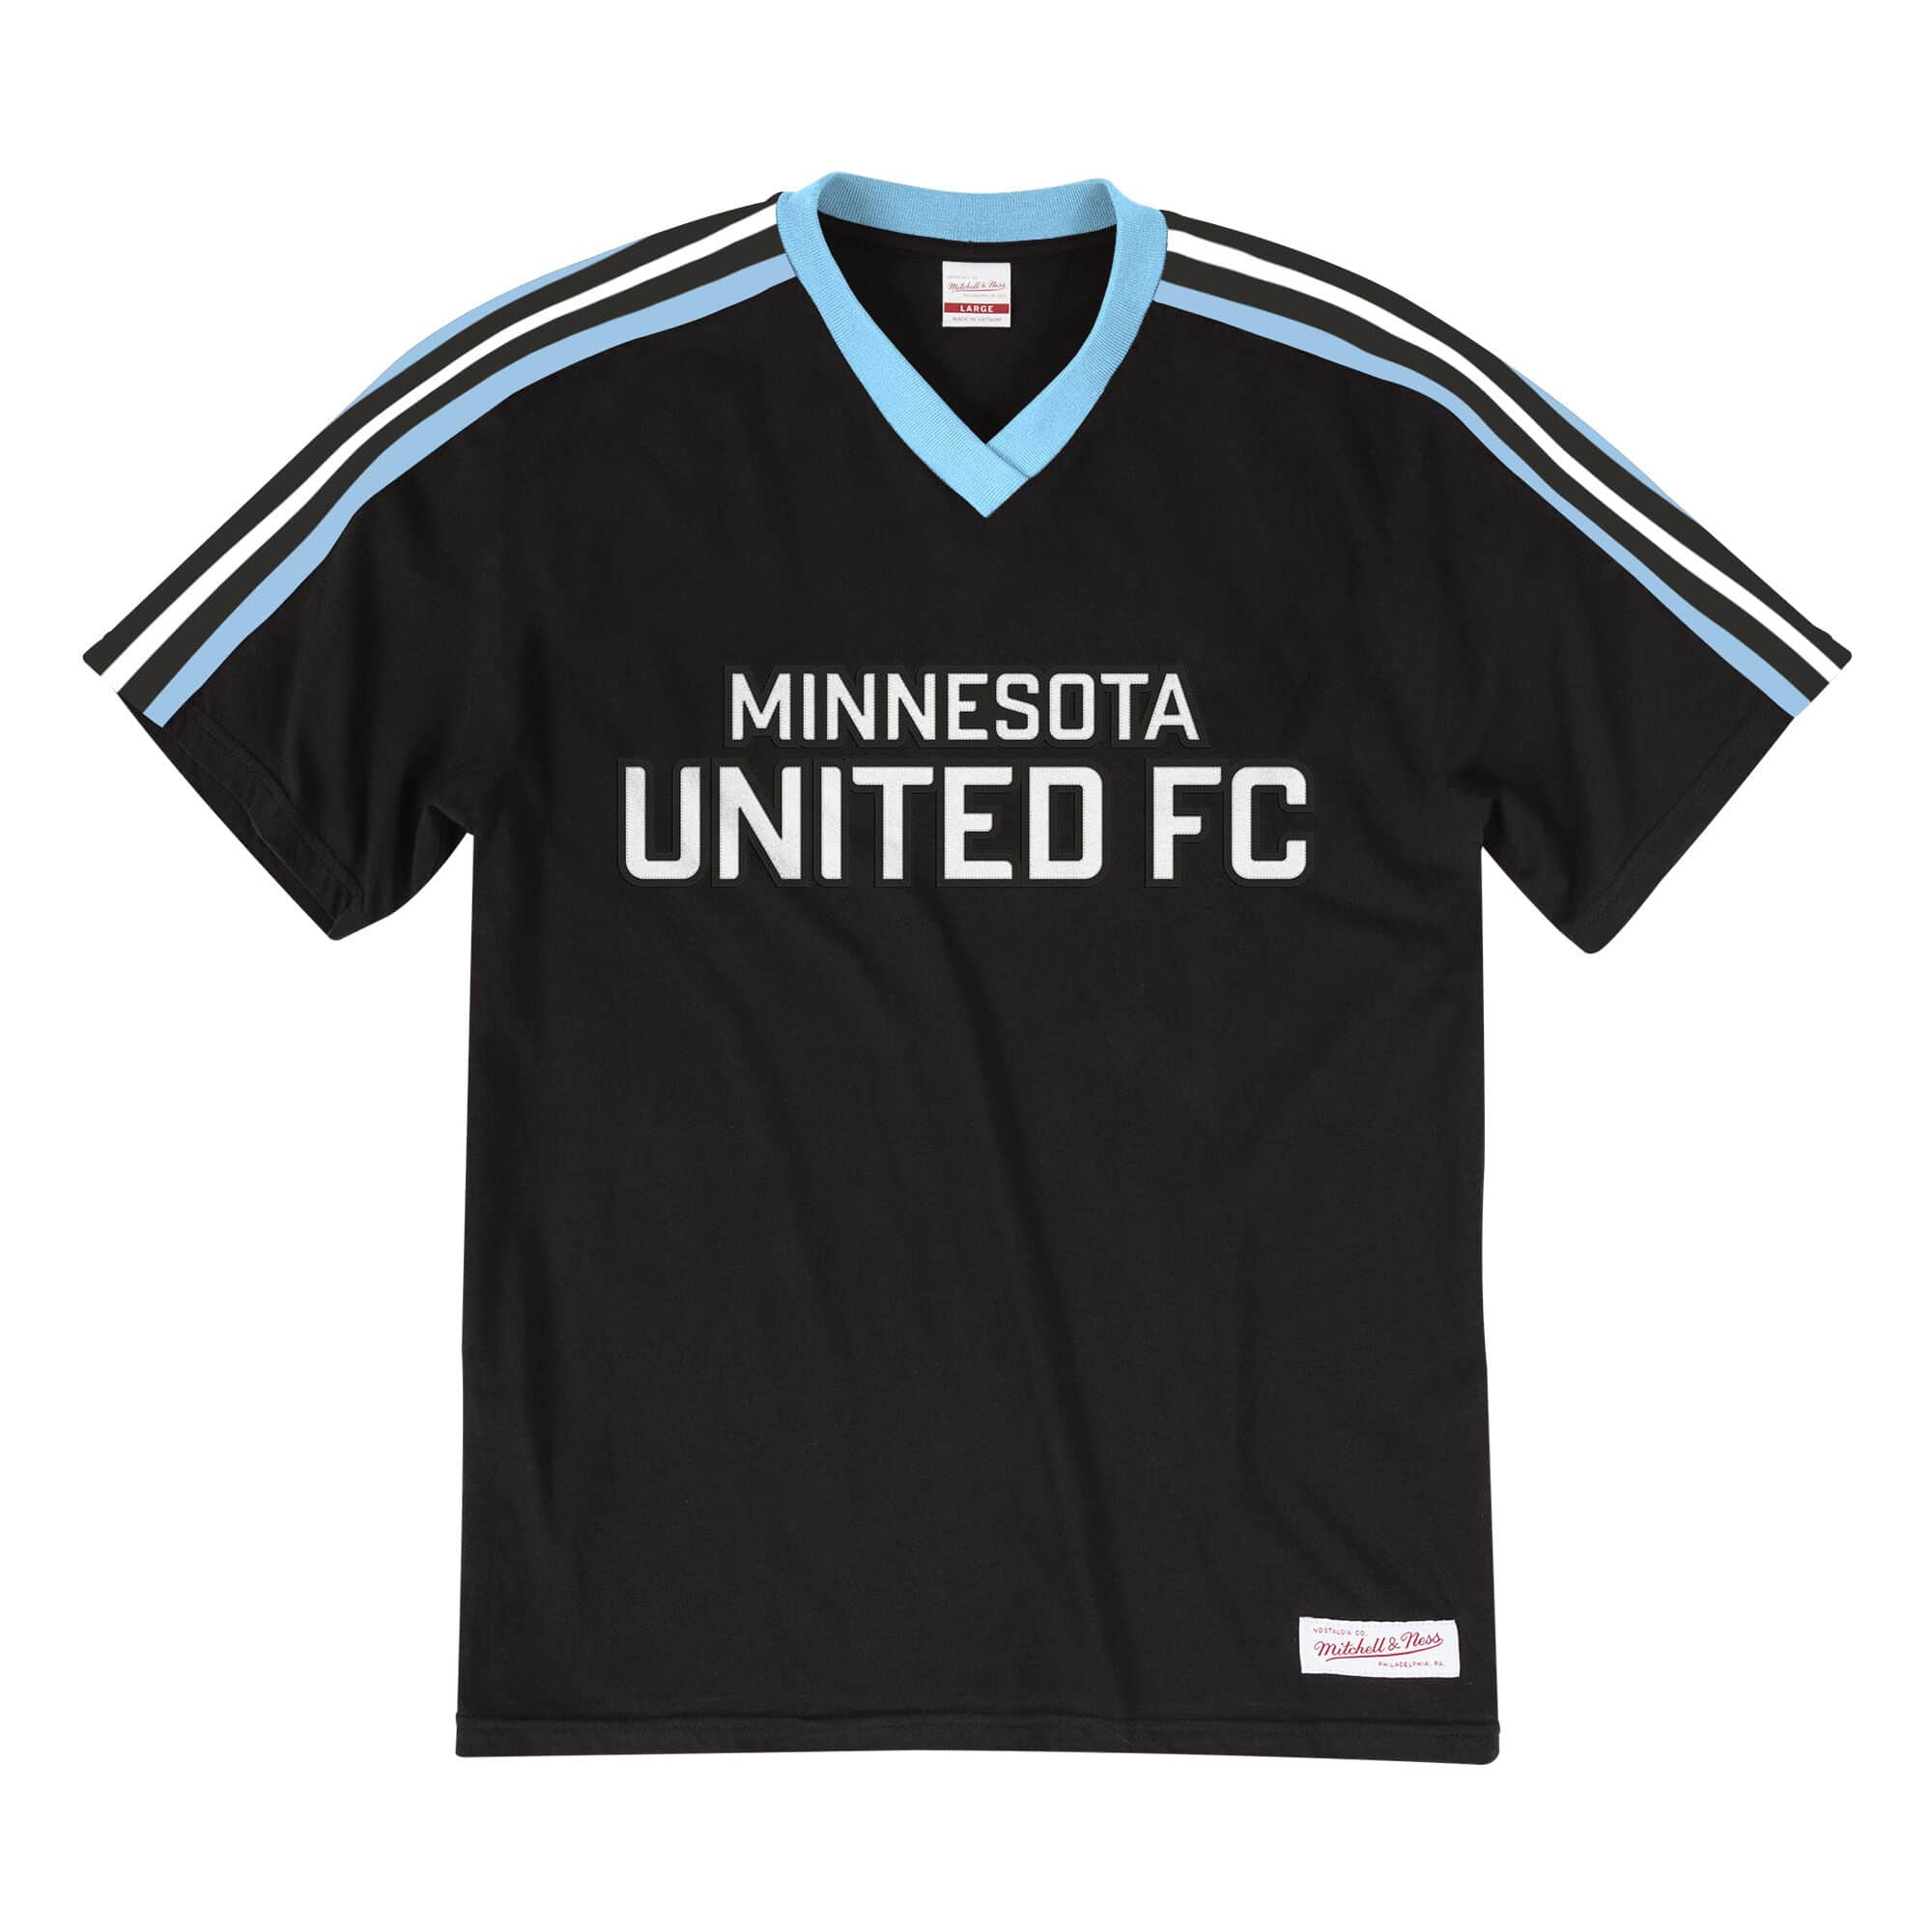 Overtime Win V-Neck Tee Minnesota United FC